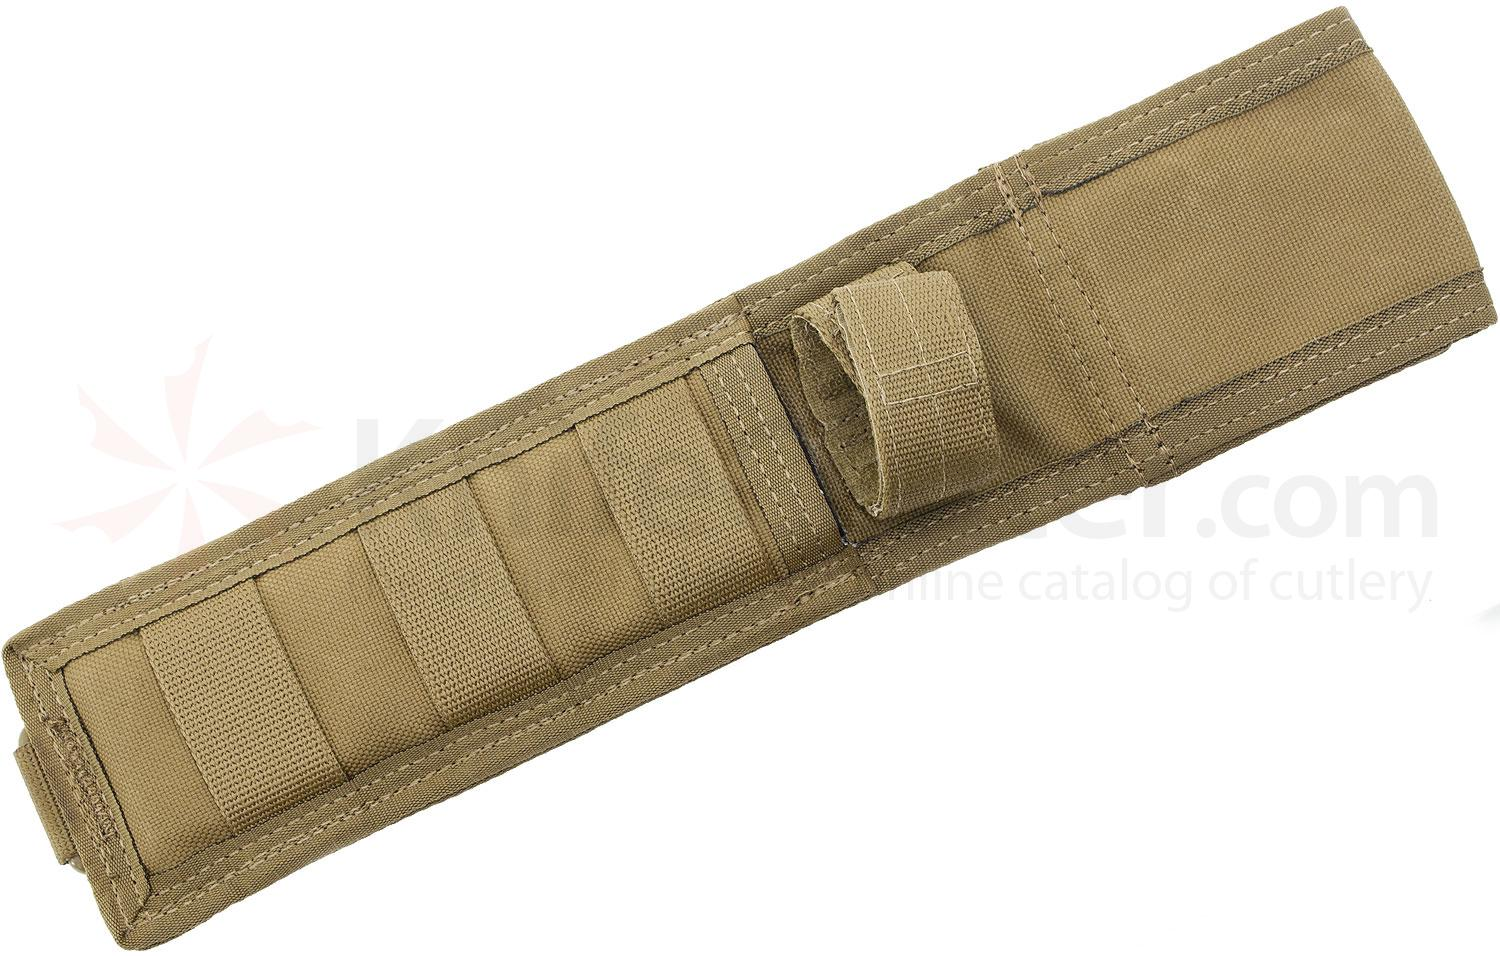 Spartan Blades MOLLE Nylon Sheath, Coyote Tan, Fits Blades Up To 6.3 inch